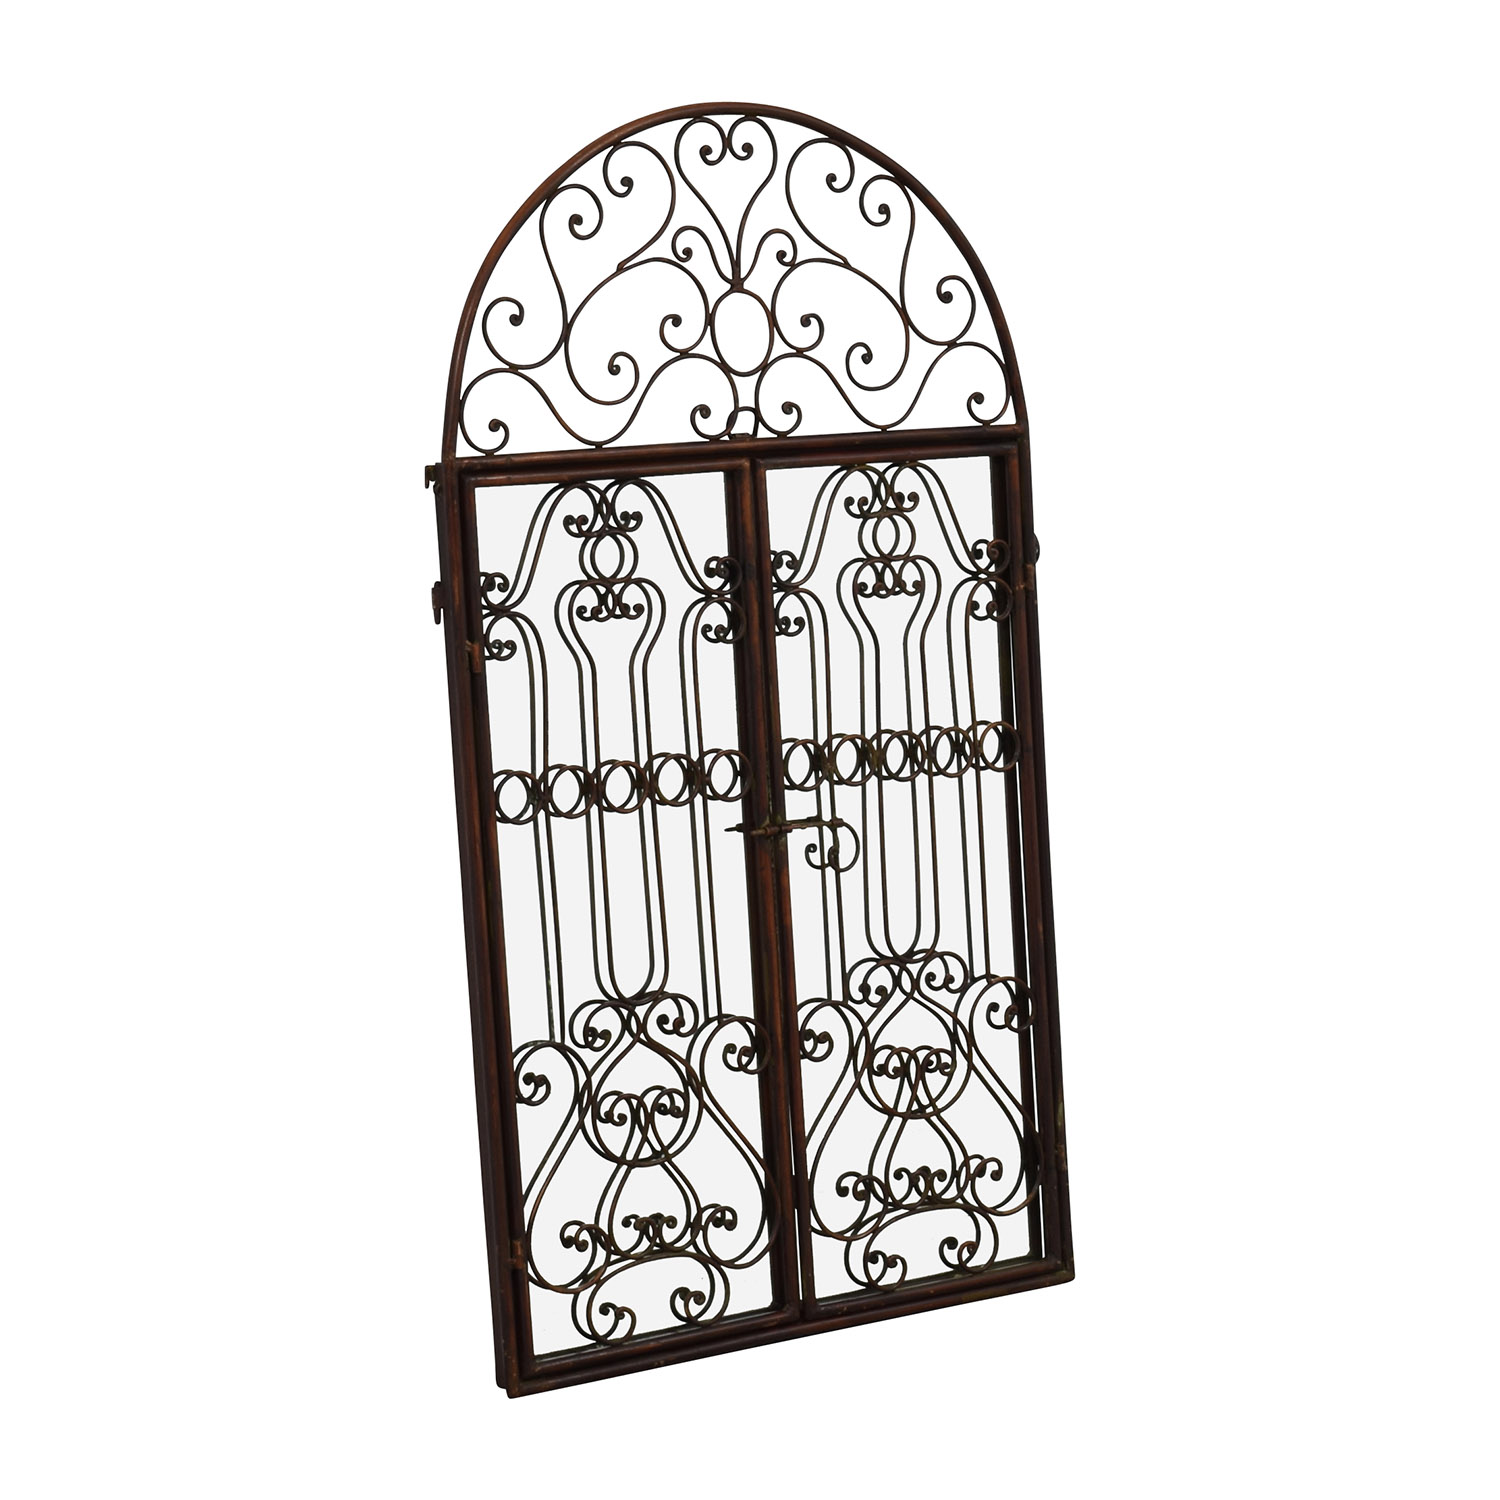 shop Artistic Mirror with Filigree Doors